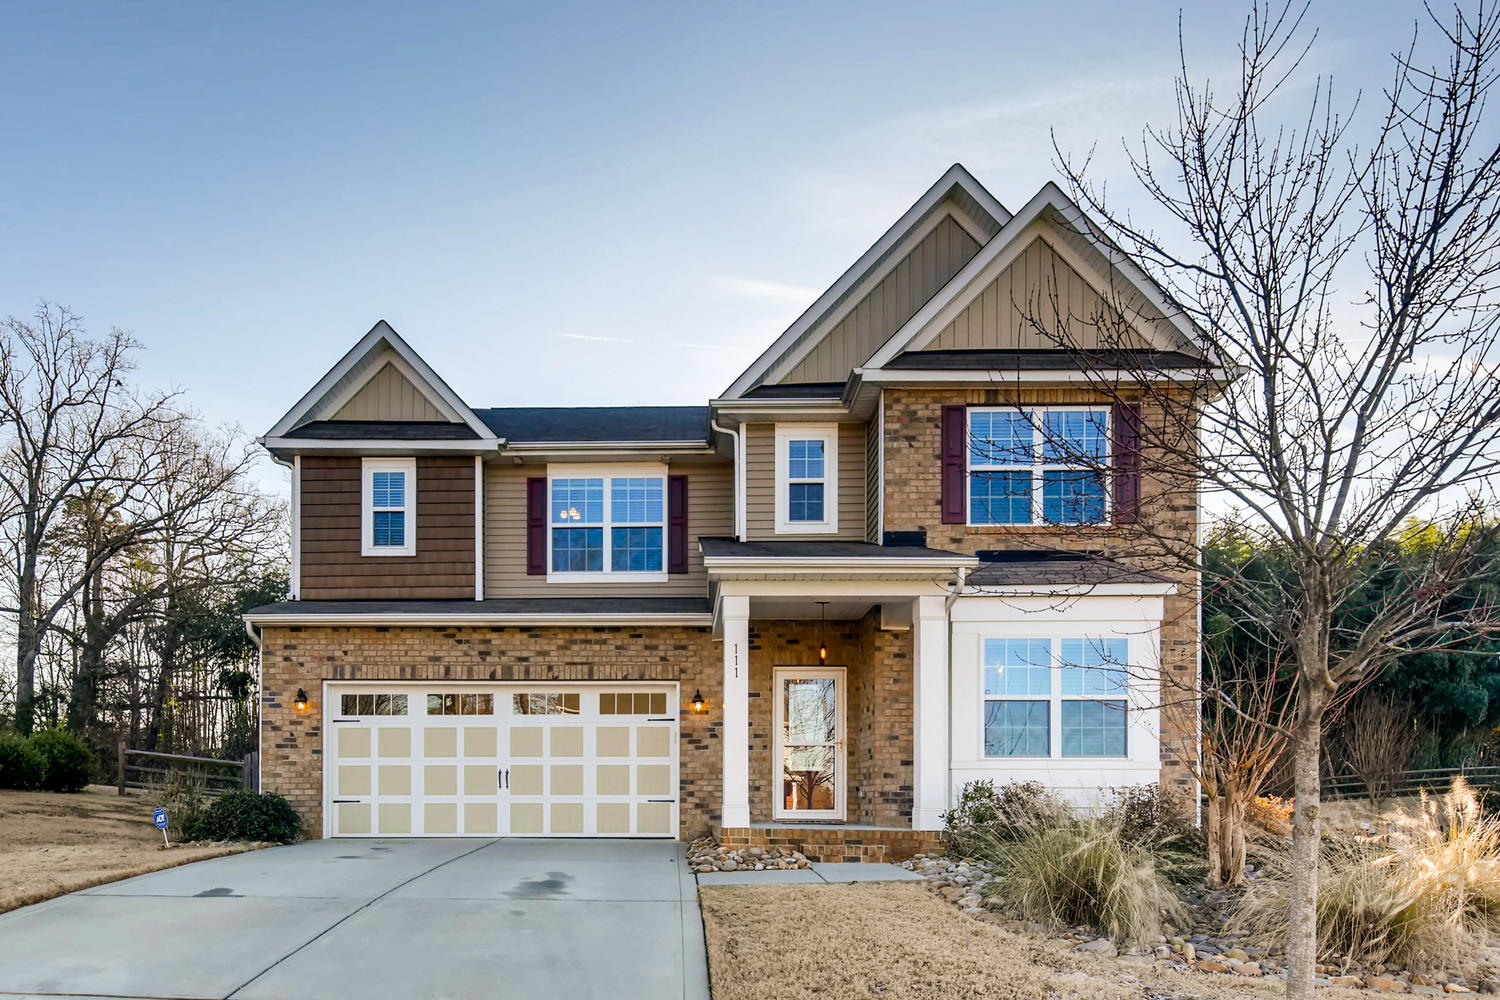 Photo of 111 Rougemont Ln, Mooresville, NC, 28115